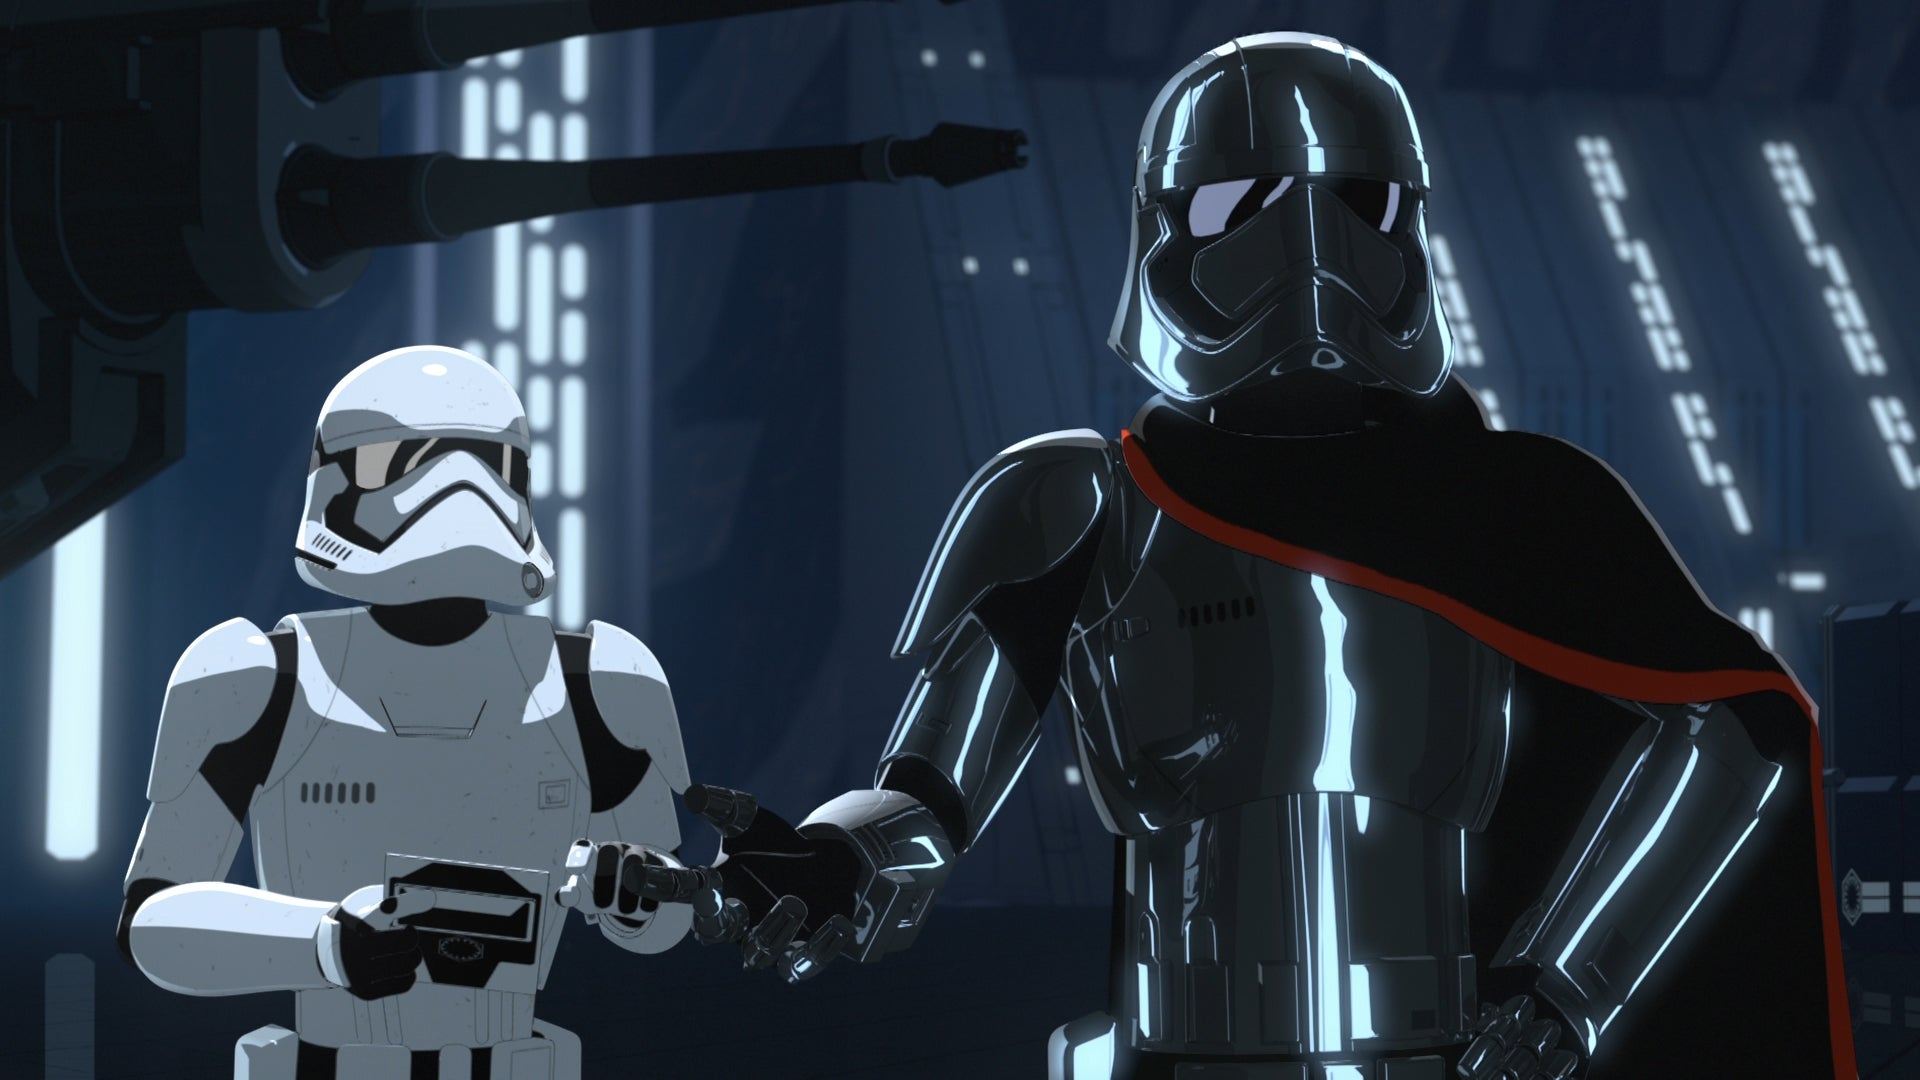 Star Wars Resistance Just Made Us Look At The Franchise Ina Whole New Way